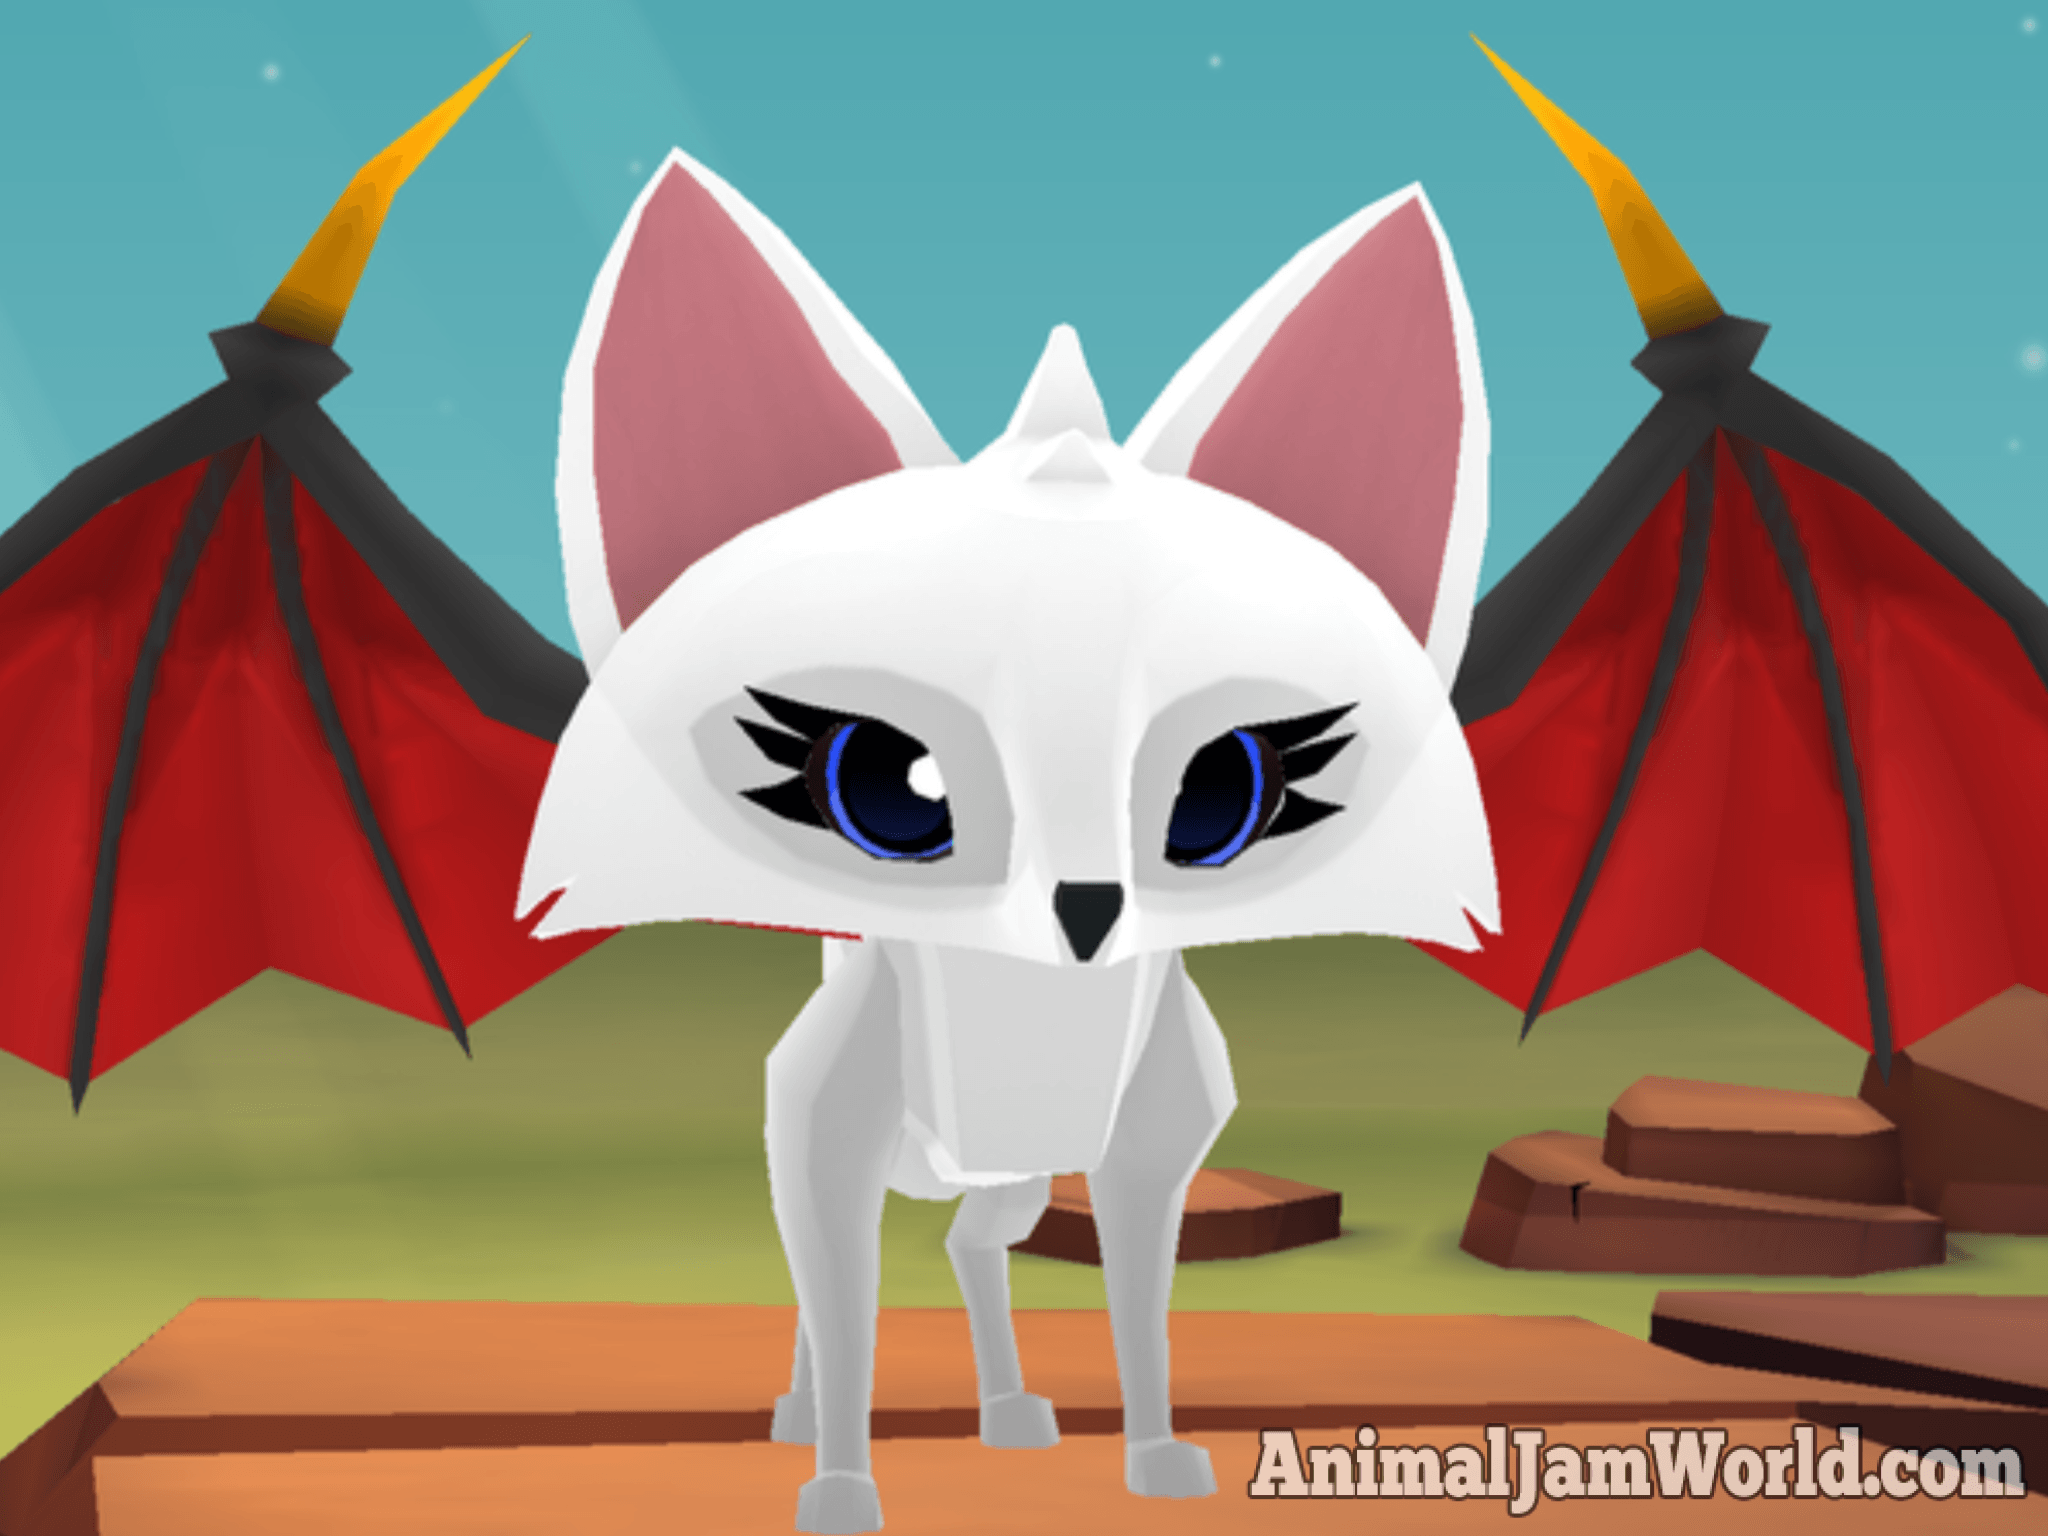 Play Wild Dragon Wings #DragonWings #PlayWild | Play Wild